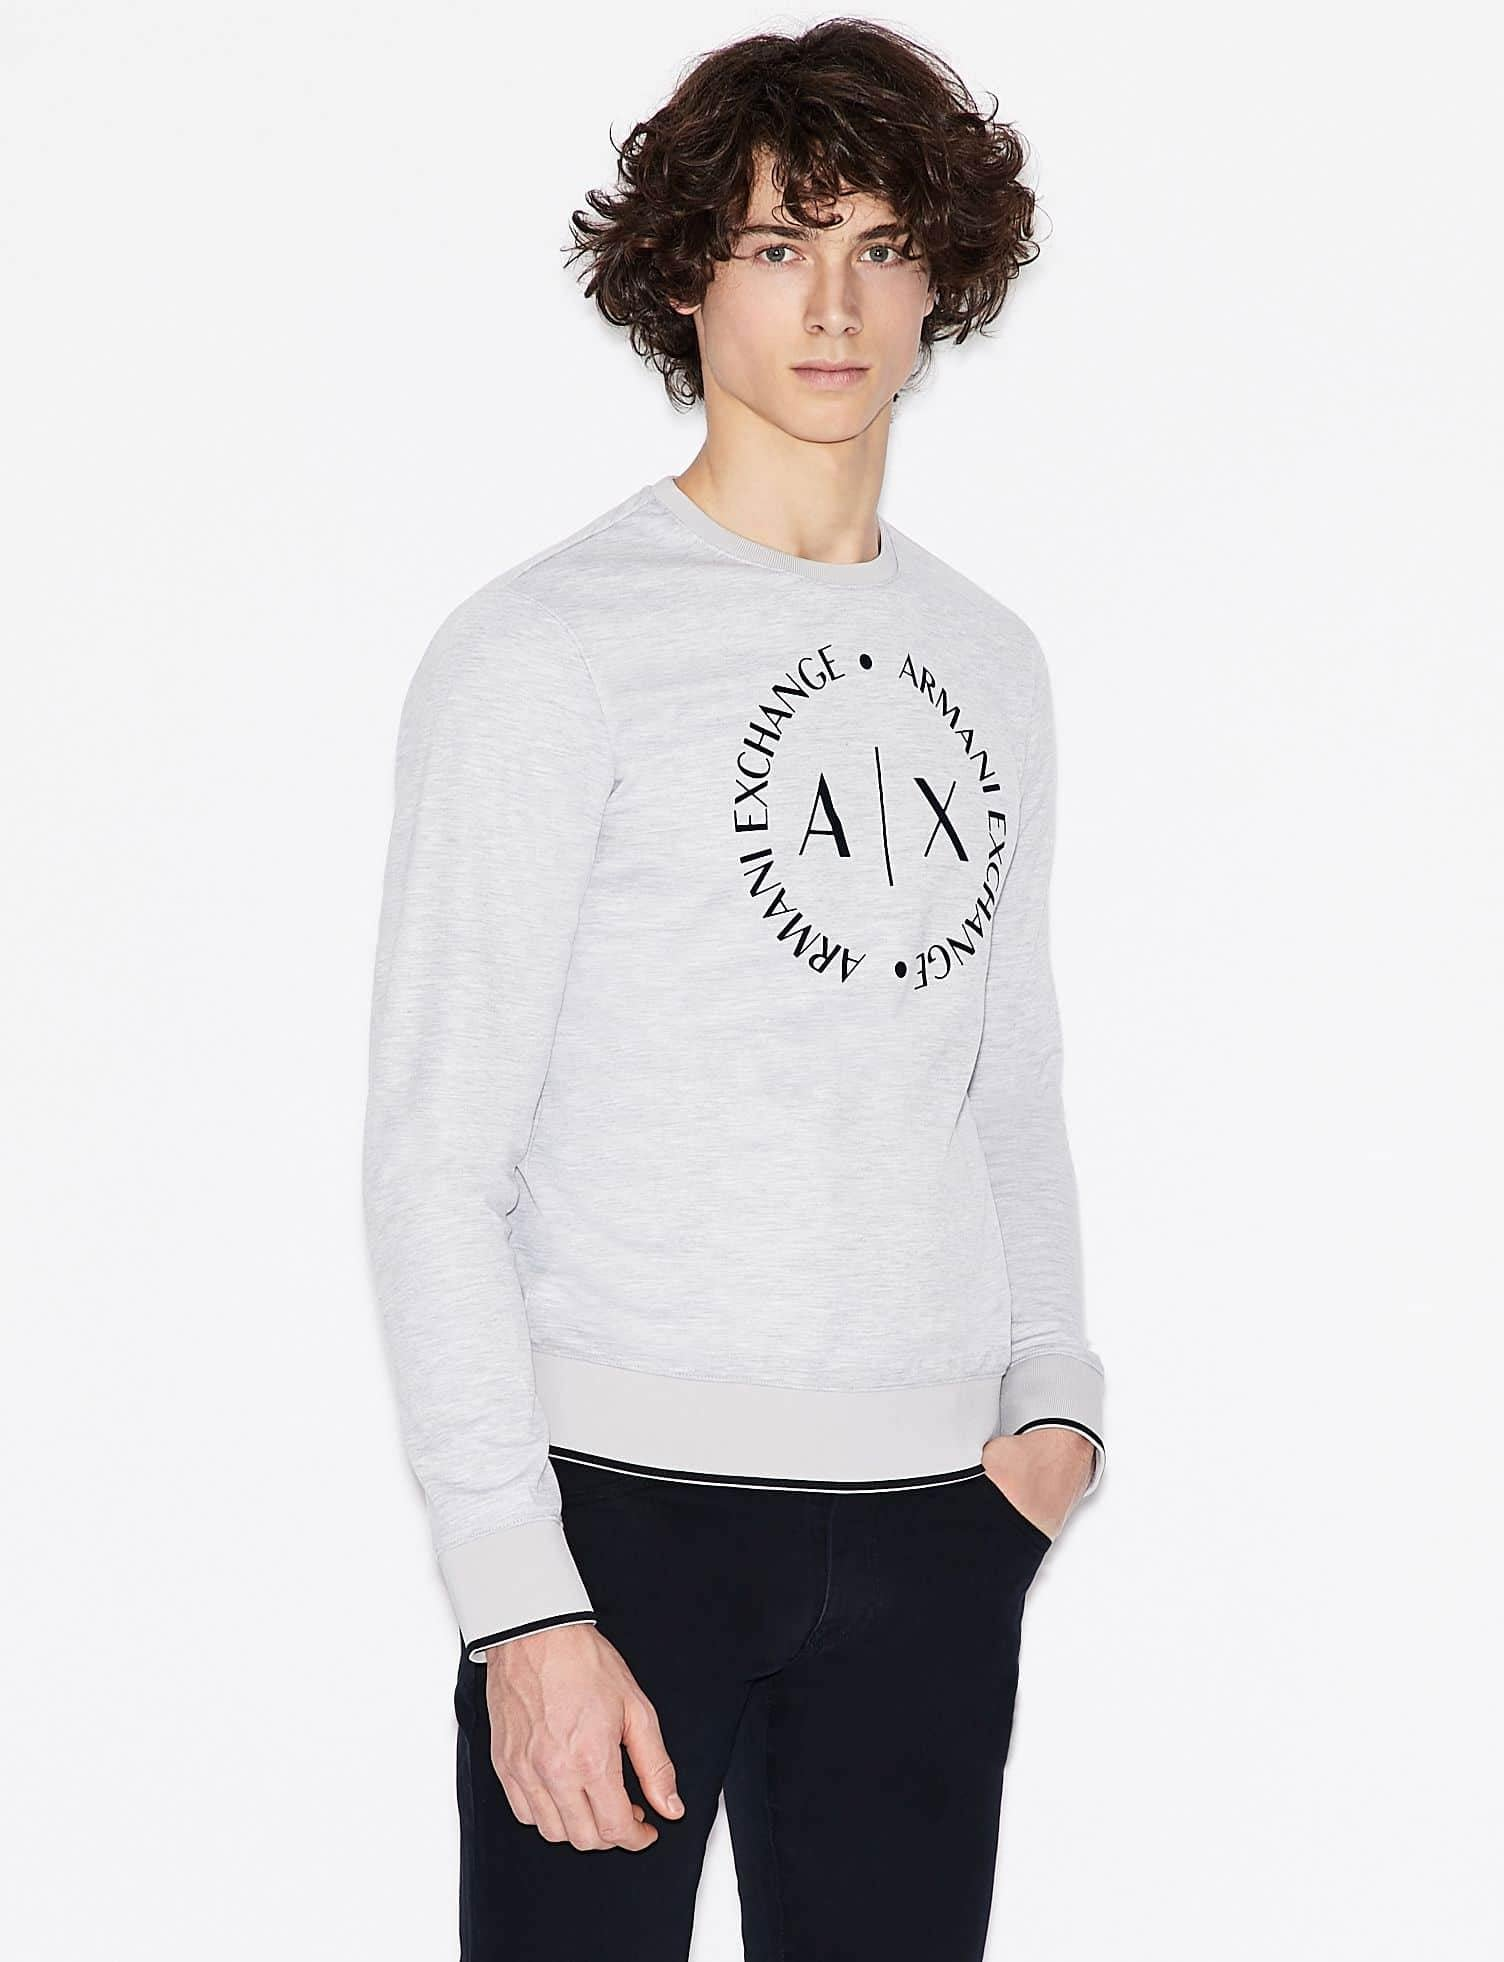 Armani Exchange - Sweater - Grey Melange - Stijl Alkmaar